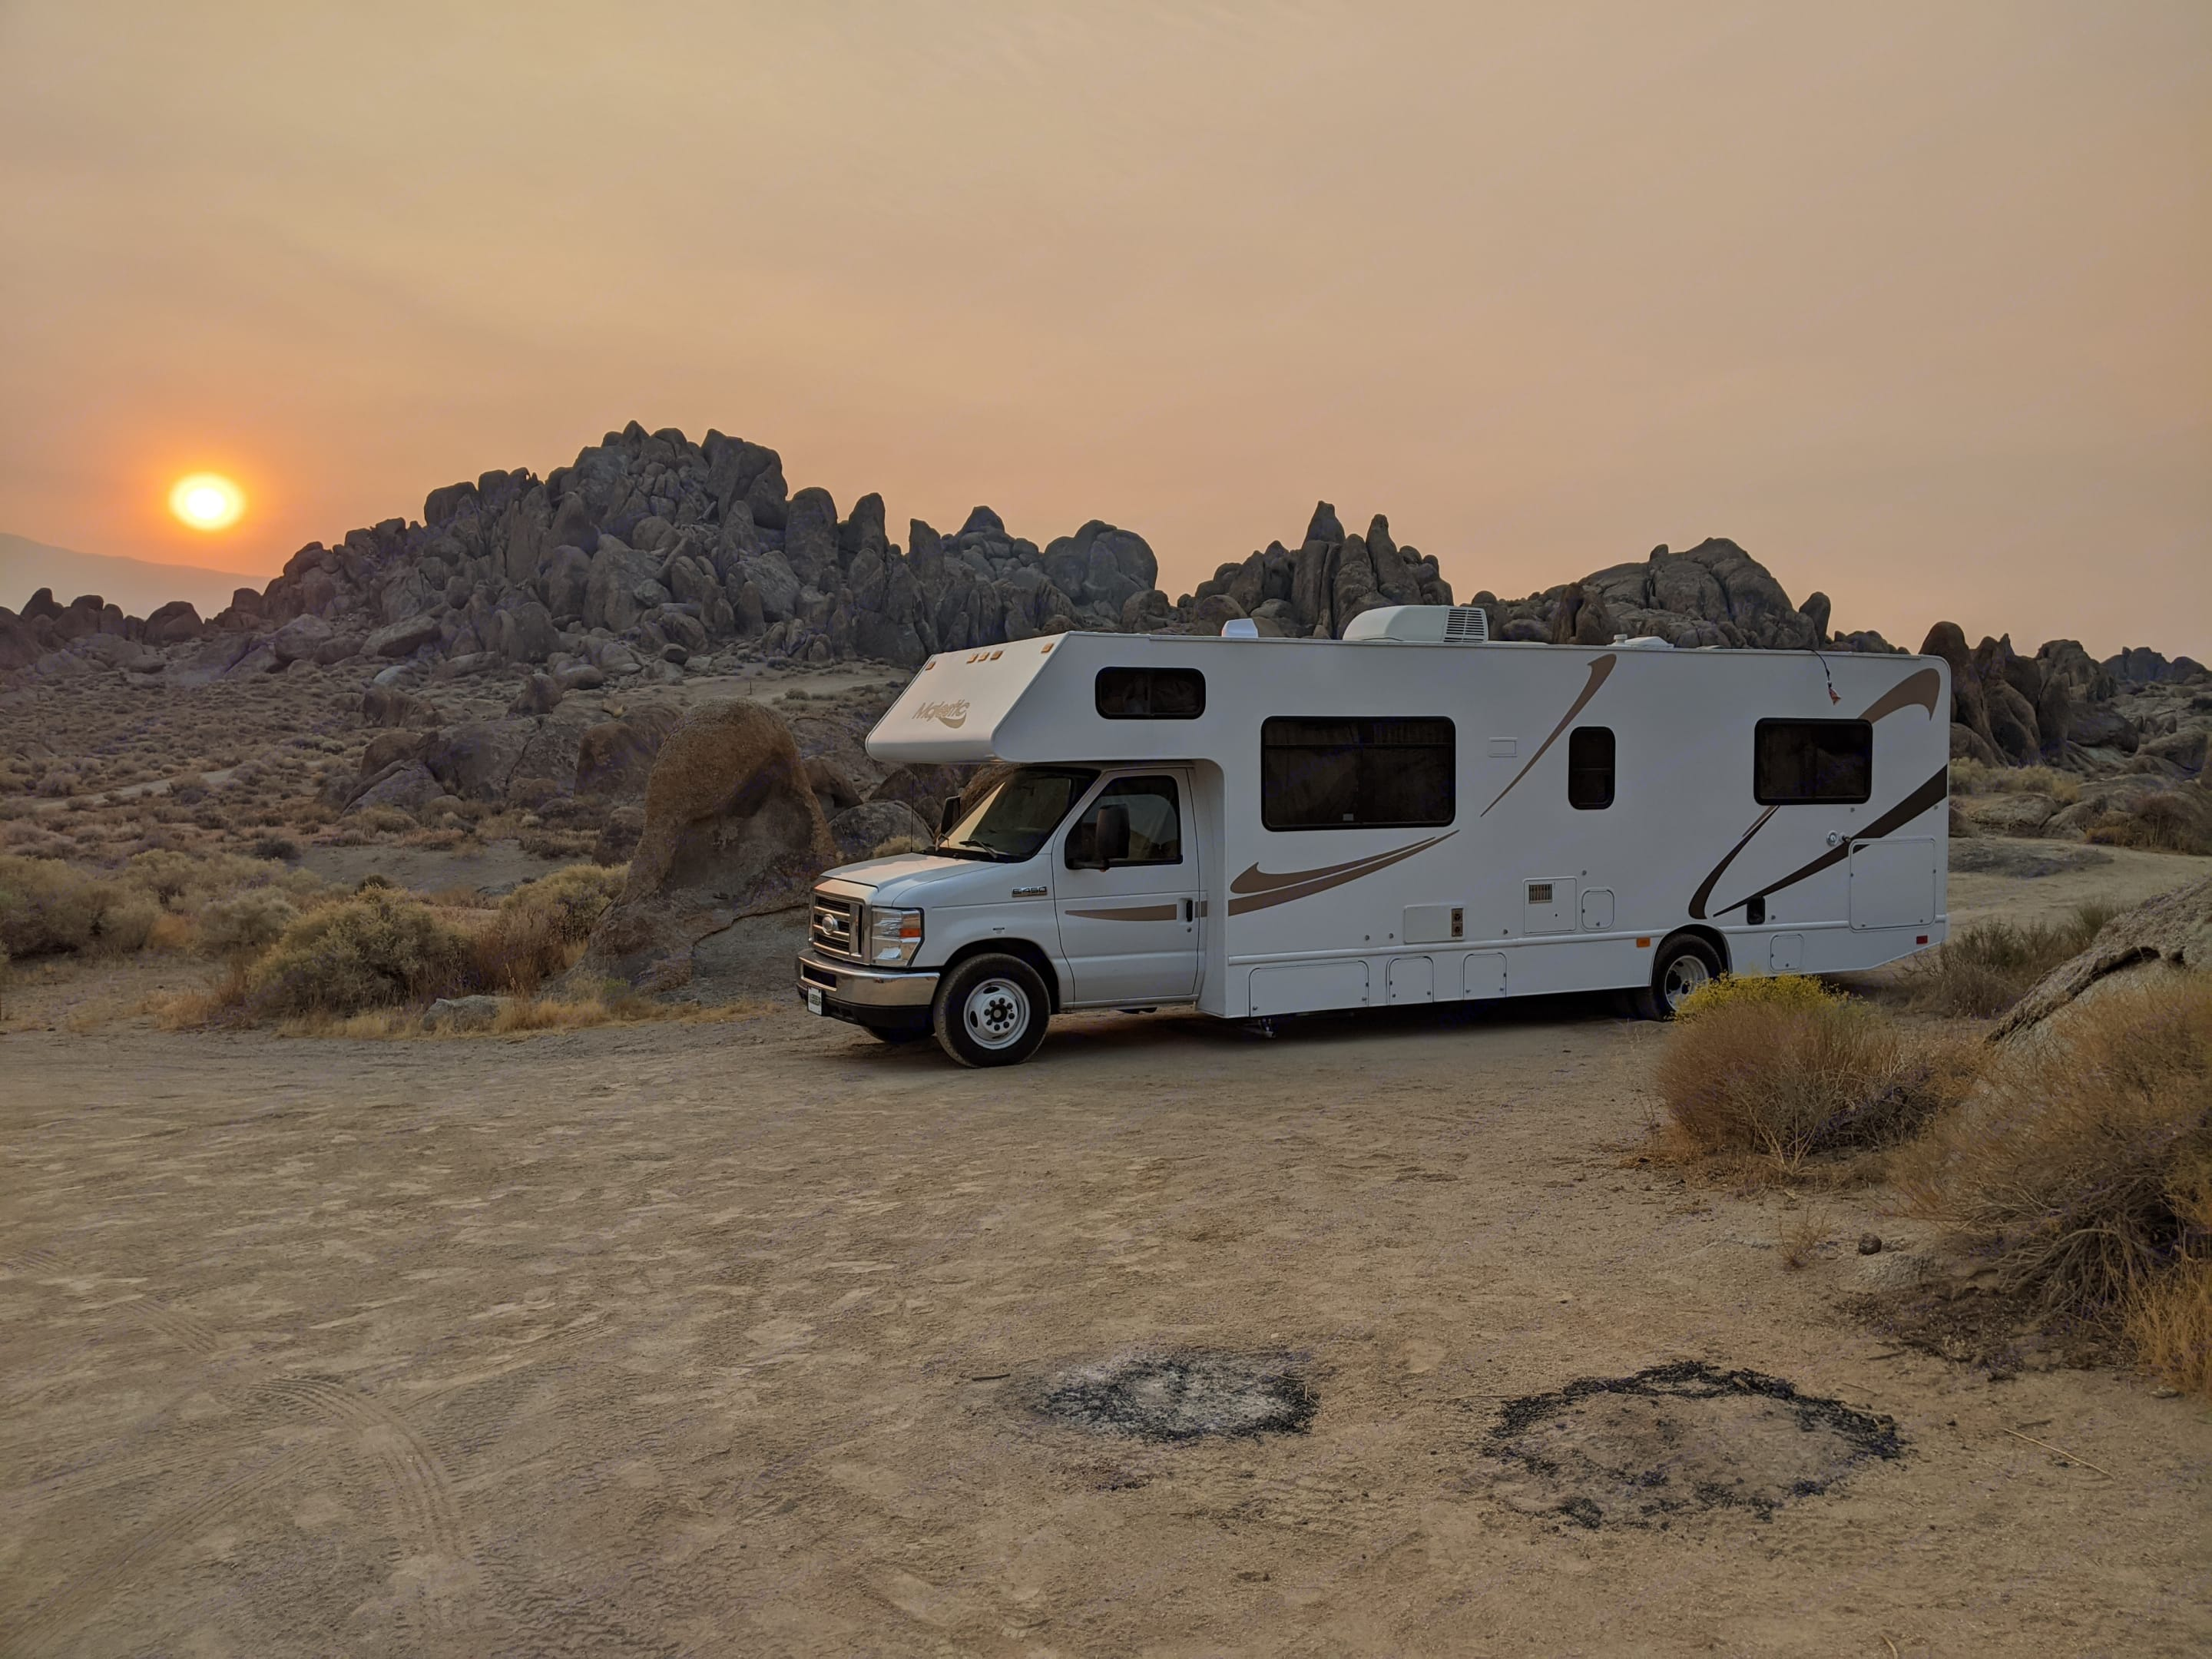 Our family boondocking adventure to Alabama Hills. Thor Motor Coach Four Winds Majestic 2015